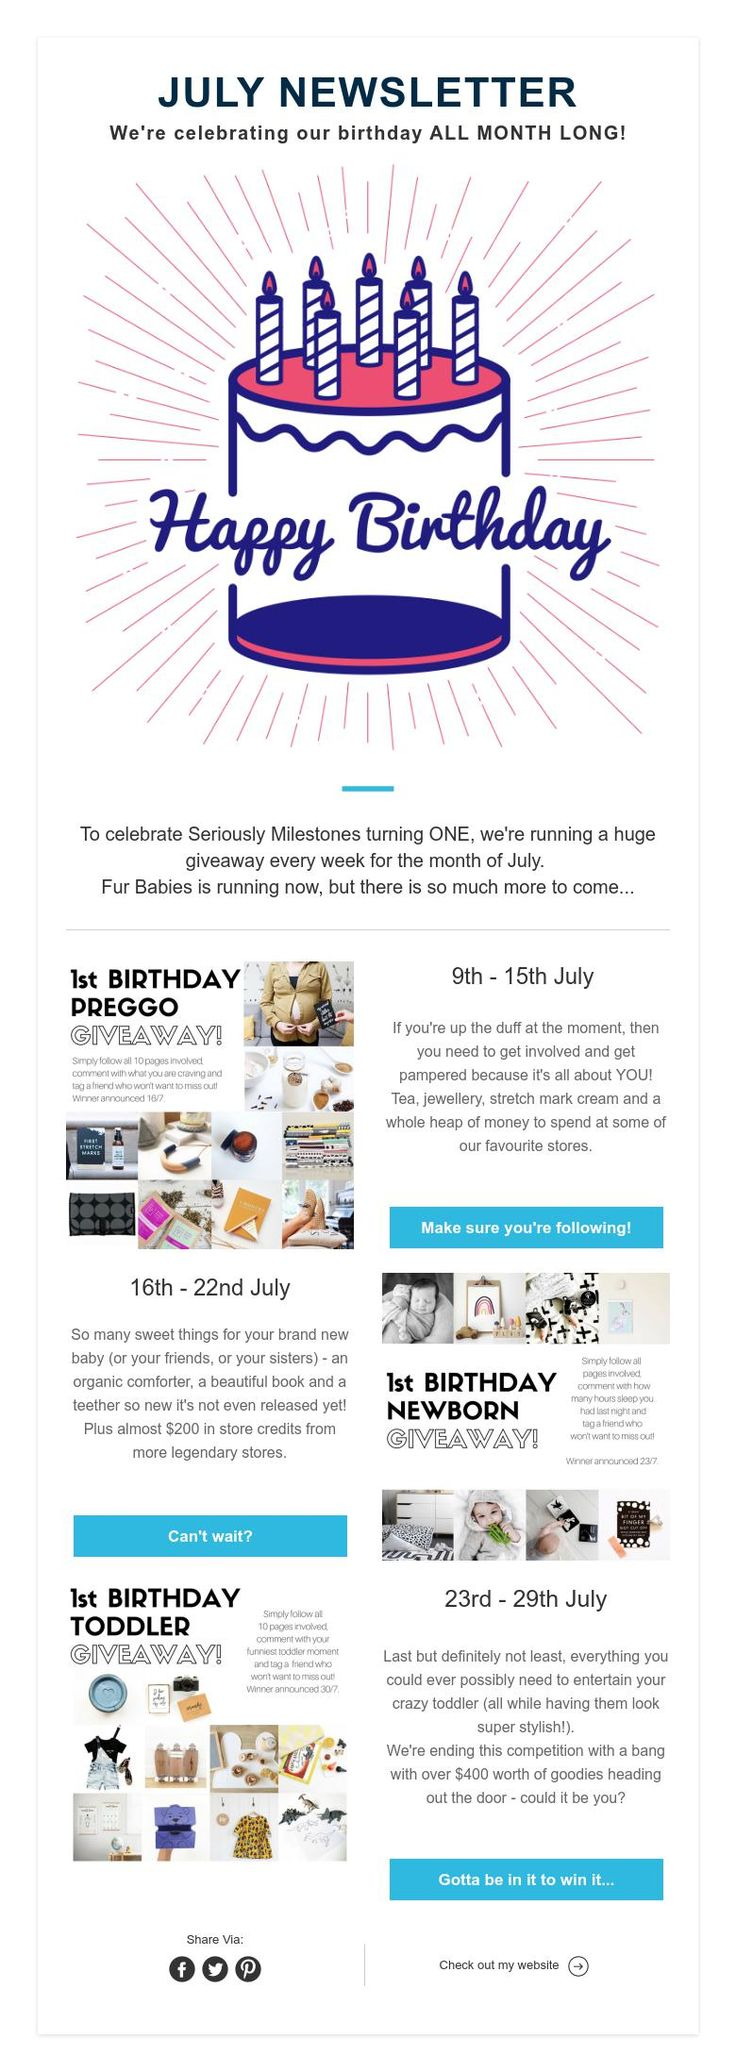 JULYNEWSLETTER  We're celebrating our birthday ALL MONTH LONG!